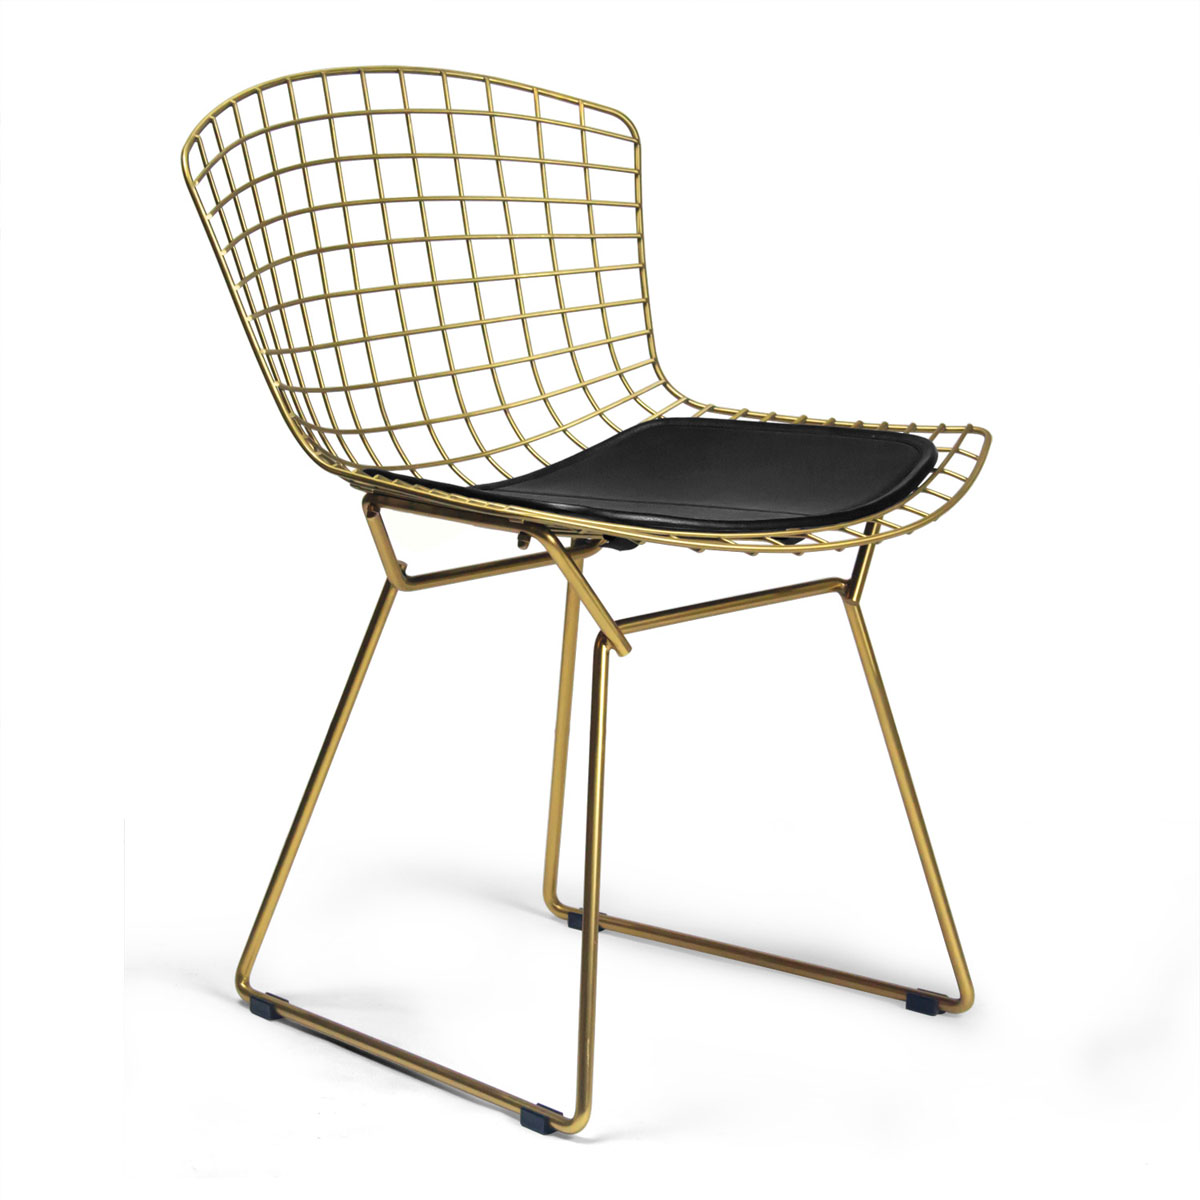 bertoia chair cushion design harry modern knoll parlor red grande products front side chrome palette